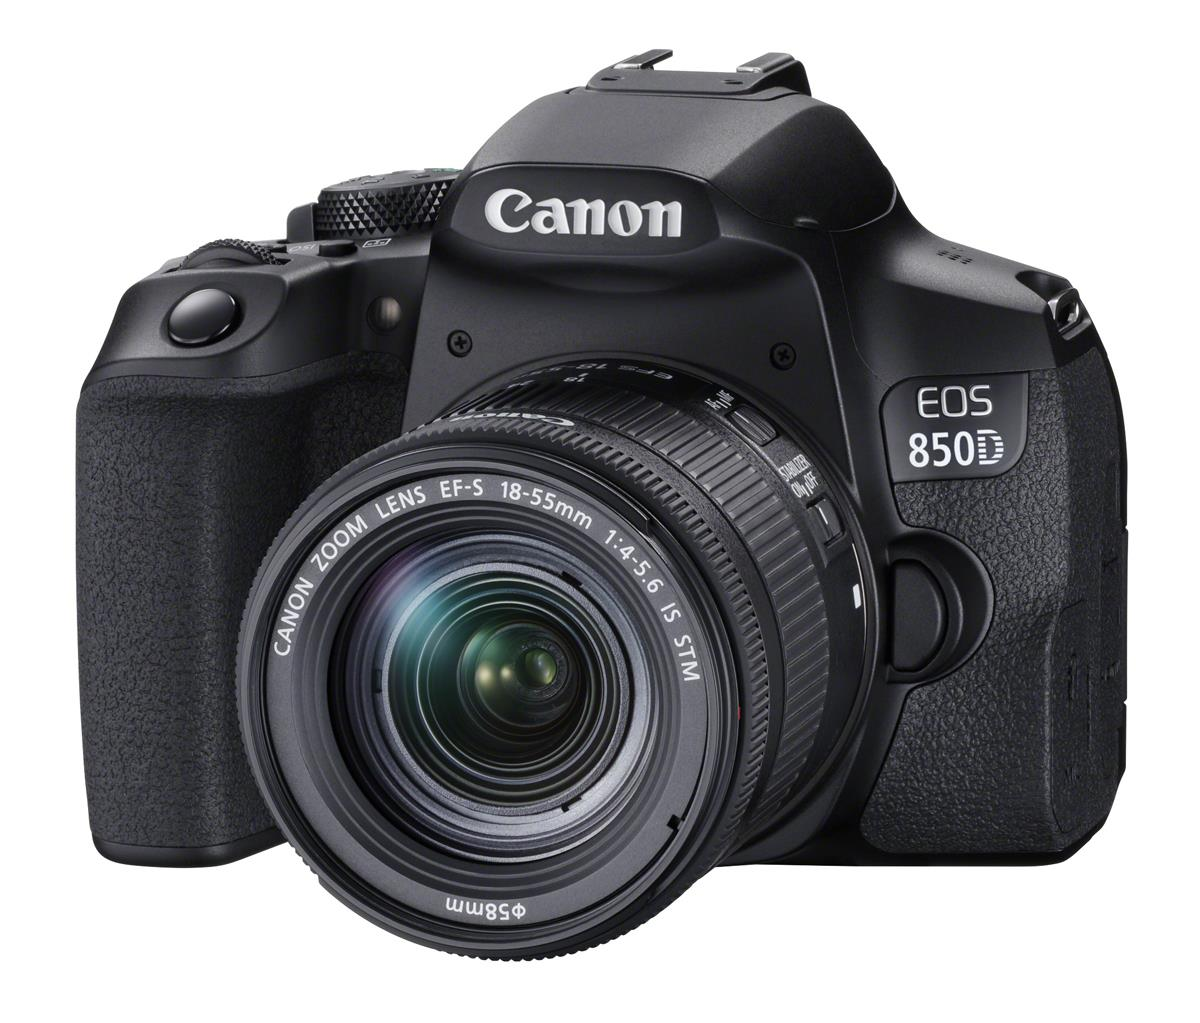 Canon EOS 850D Gehäuse + EF-S 18-55mm f4-5.6 IS STM